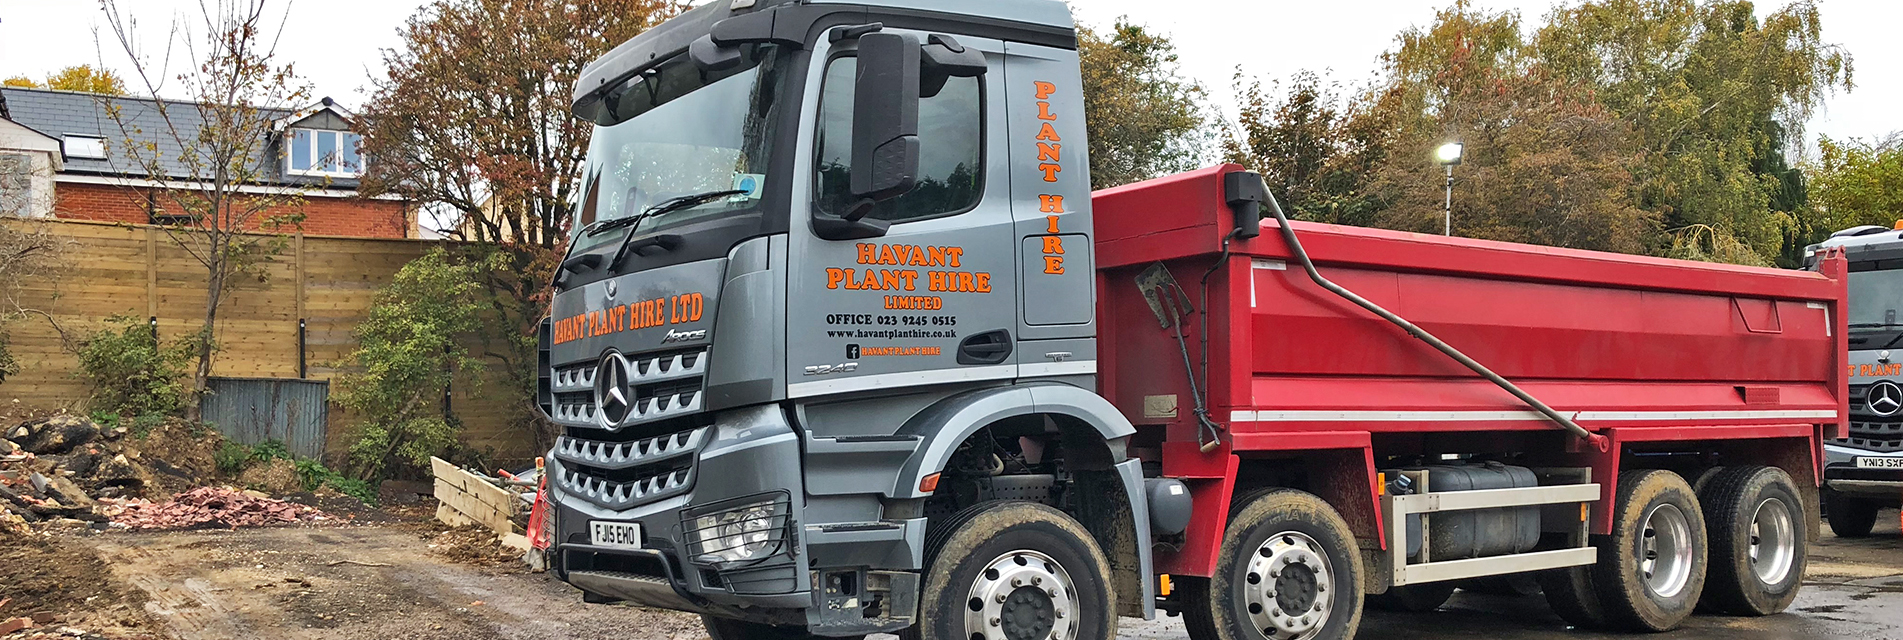 Haulage Transport Hire Sidlesham